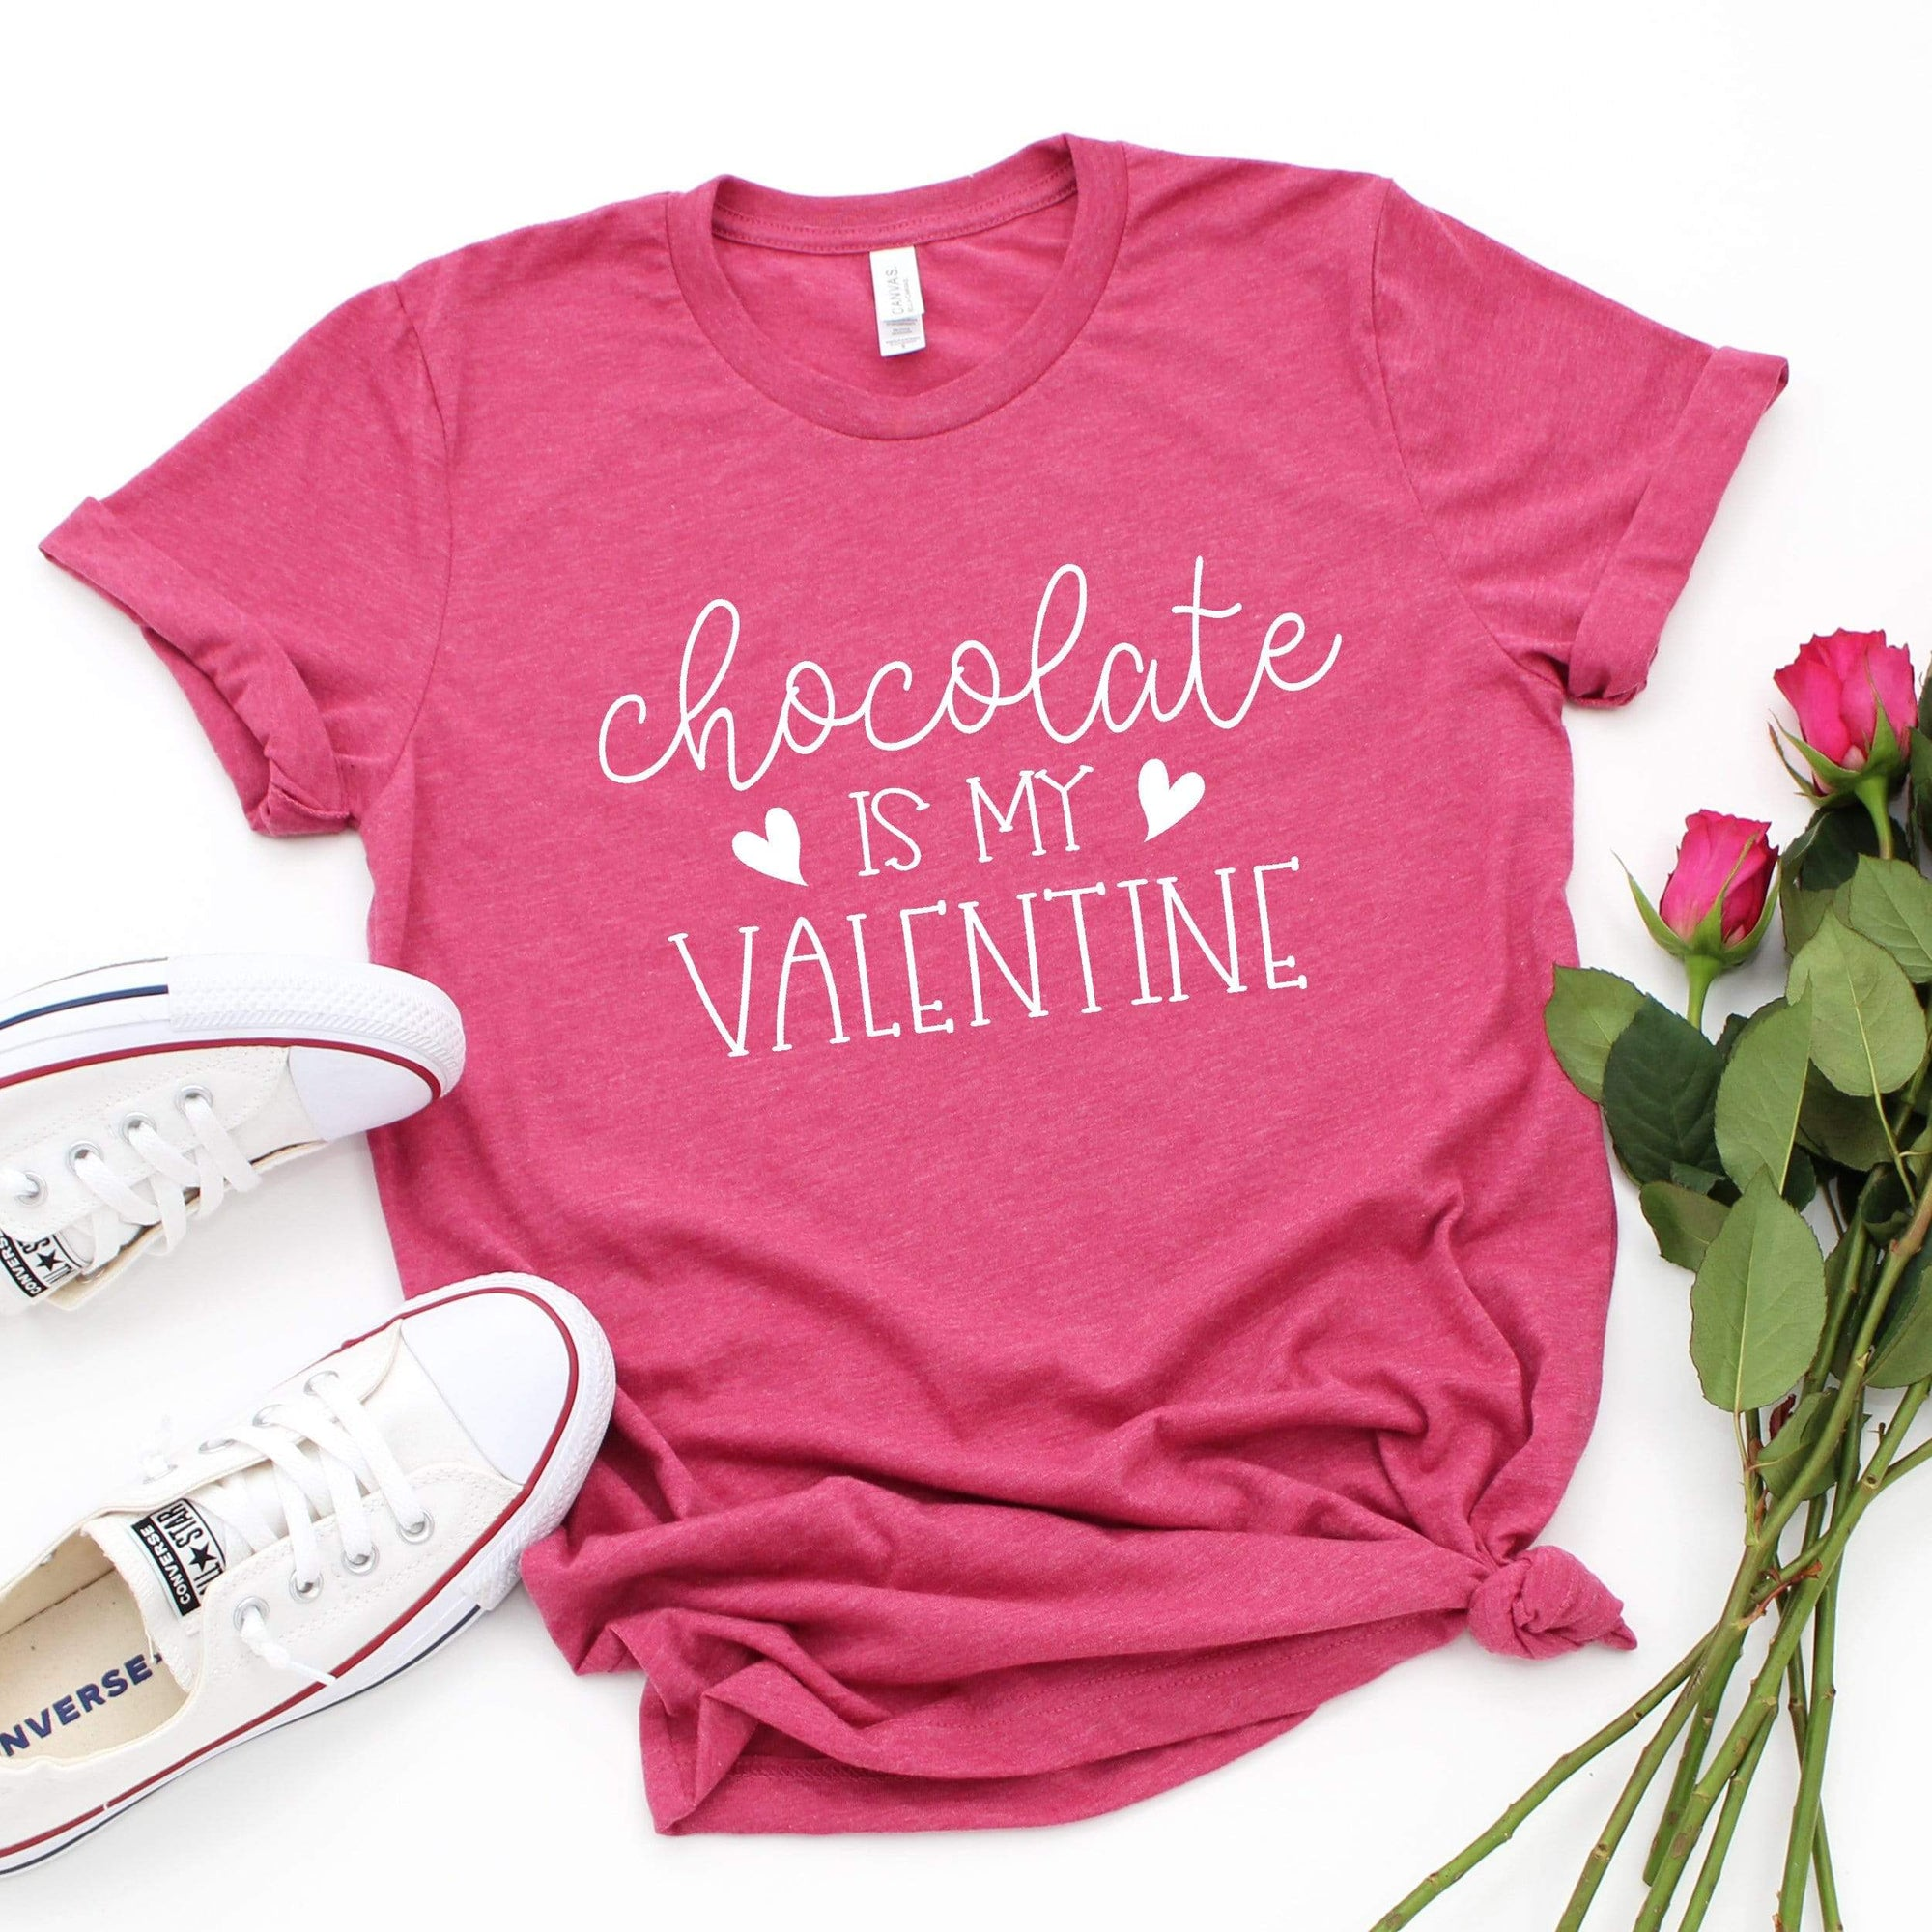 Leanne & Co. Shirt Chocolate is my Valentine Short-Sleeve Unisex T-Shirt